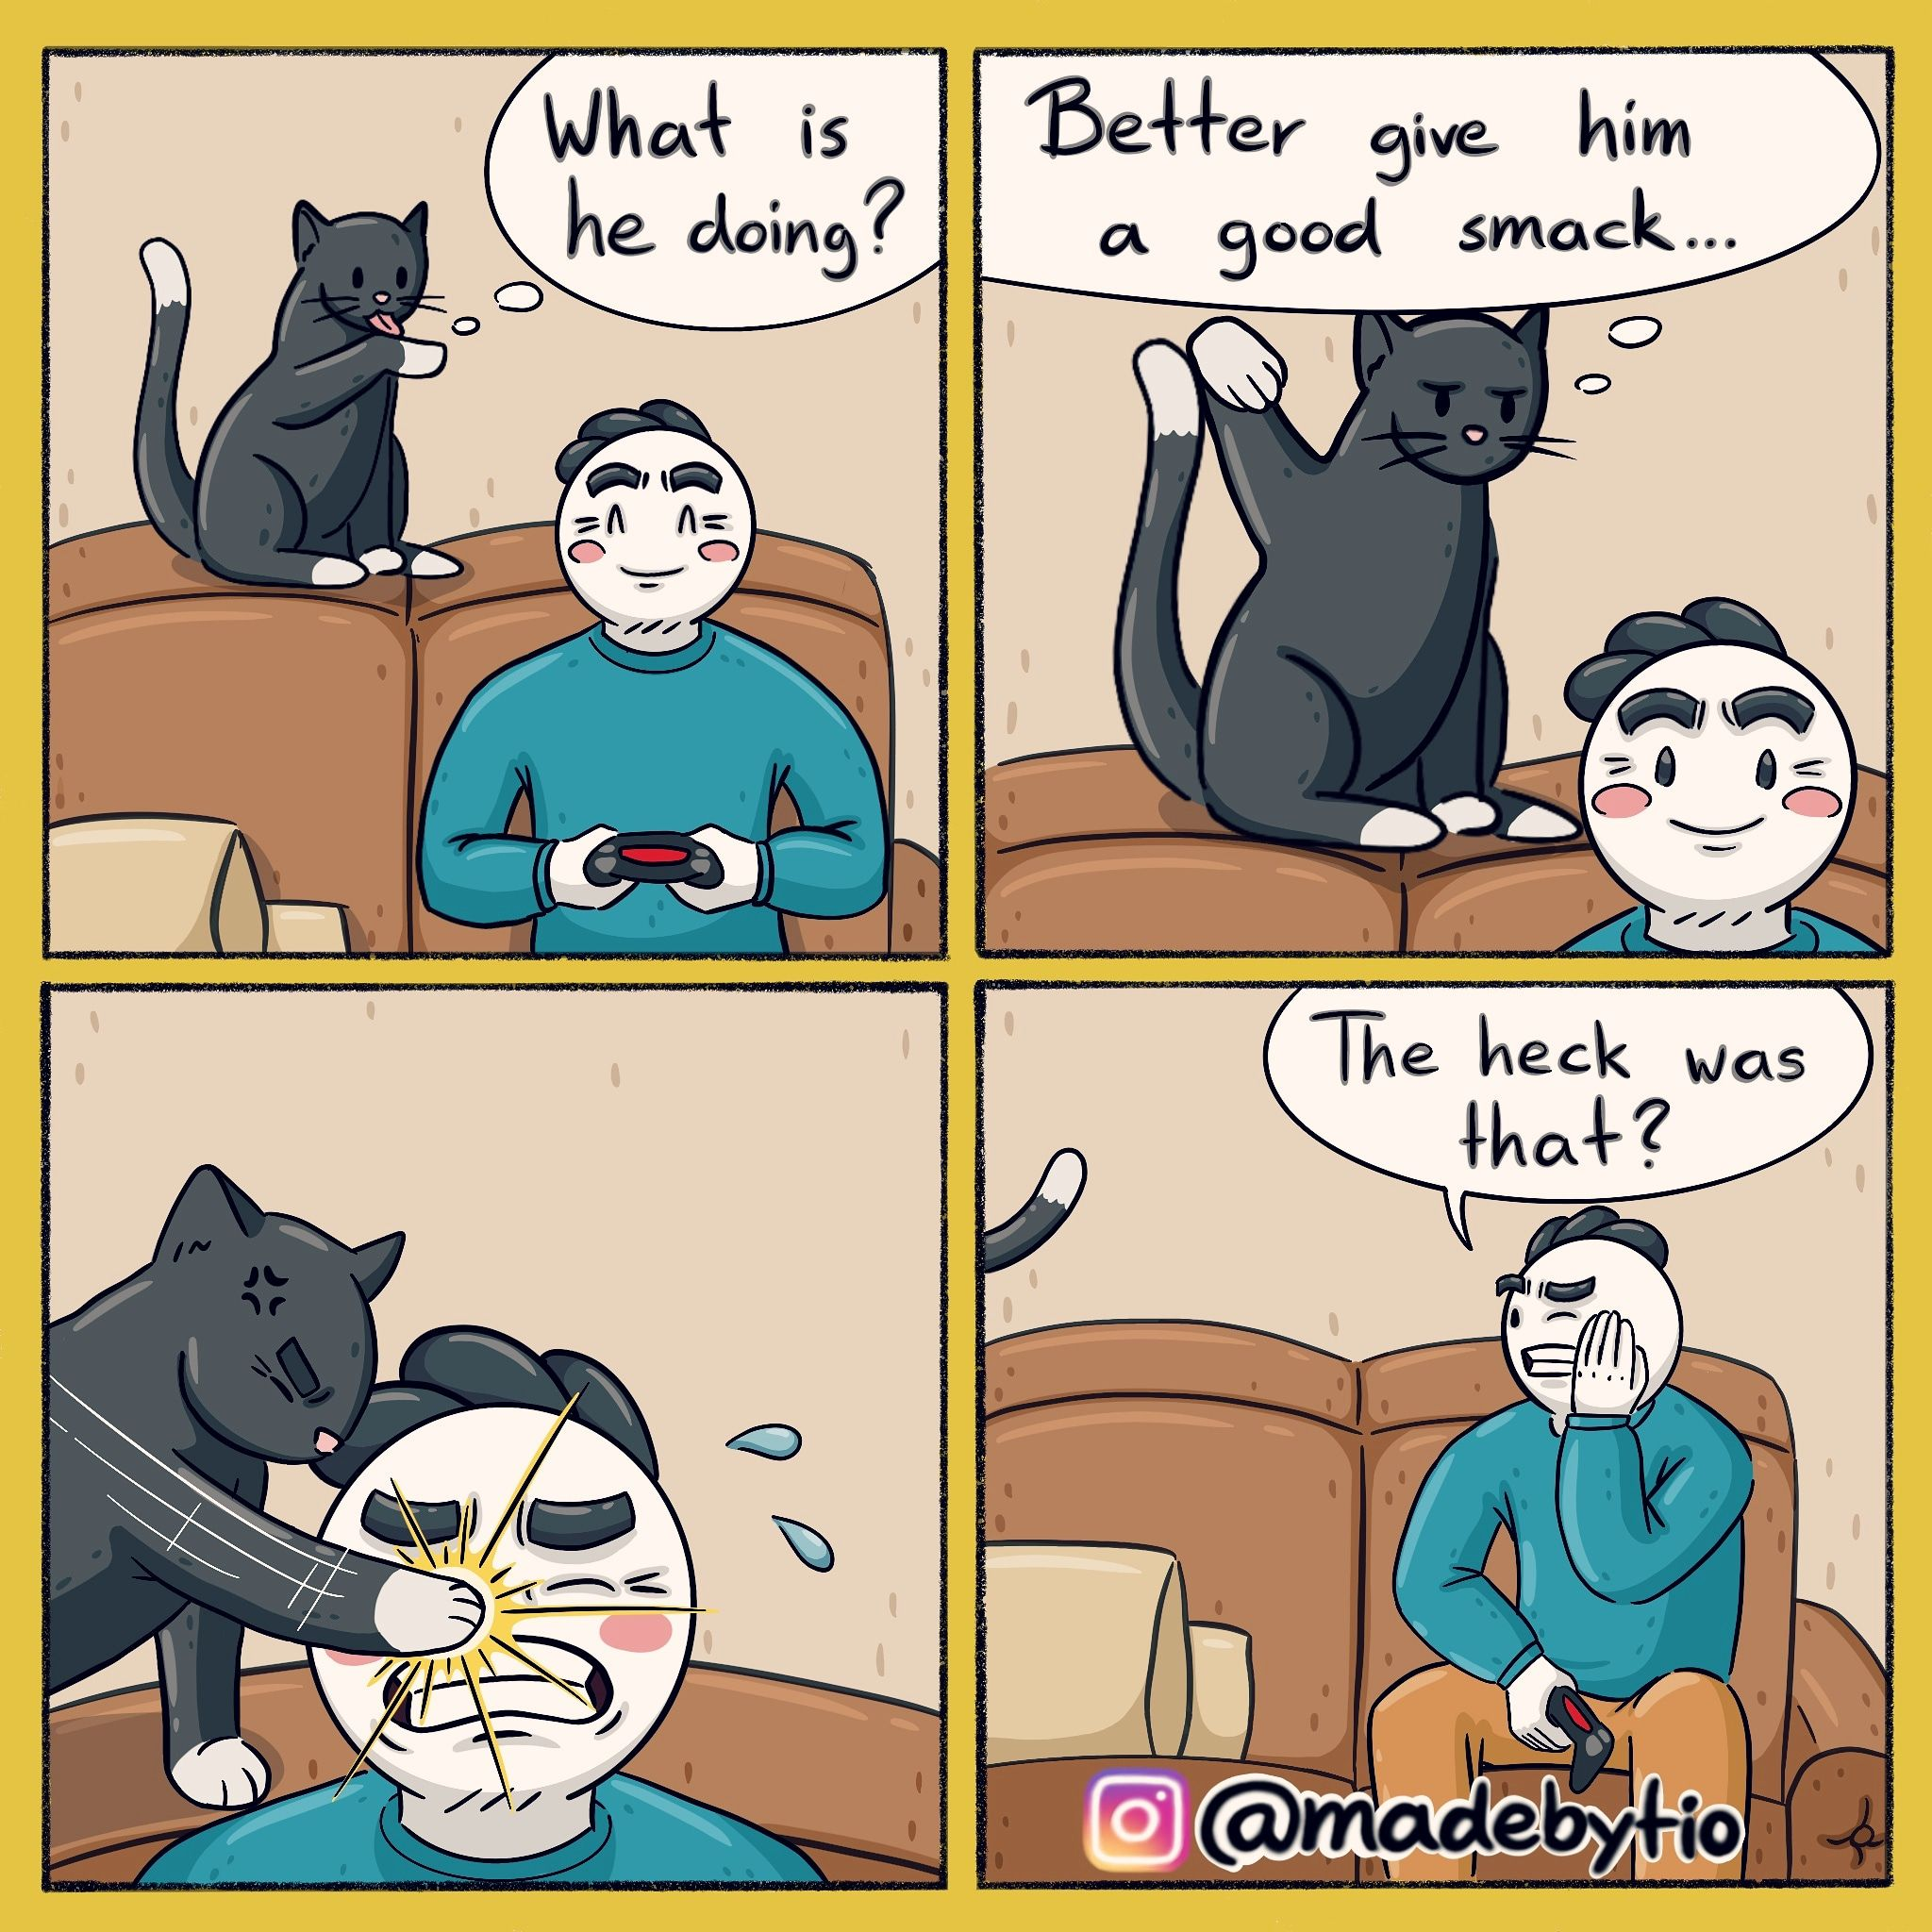 Cat: If in doubt, better smack